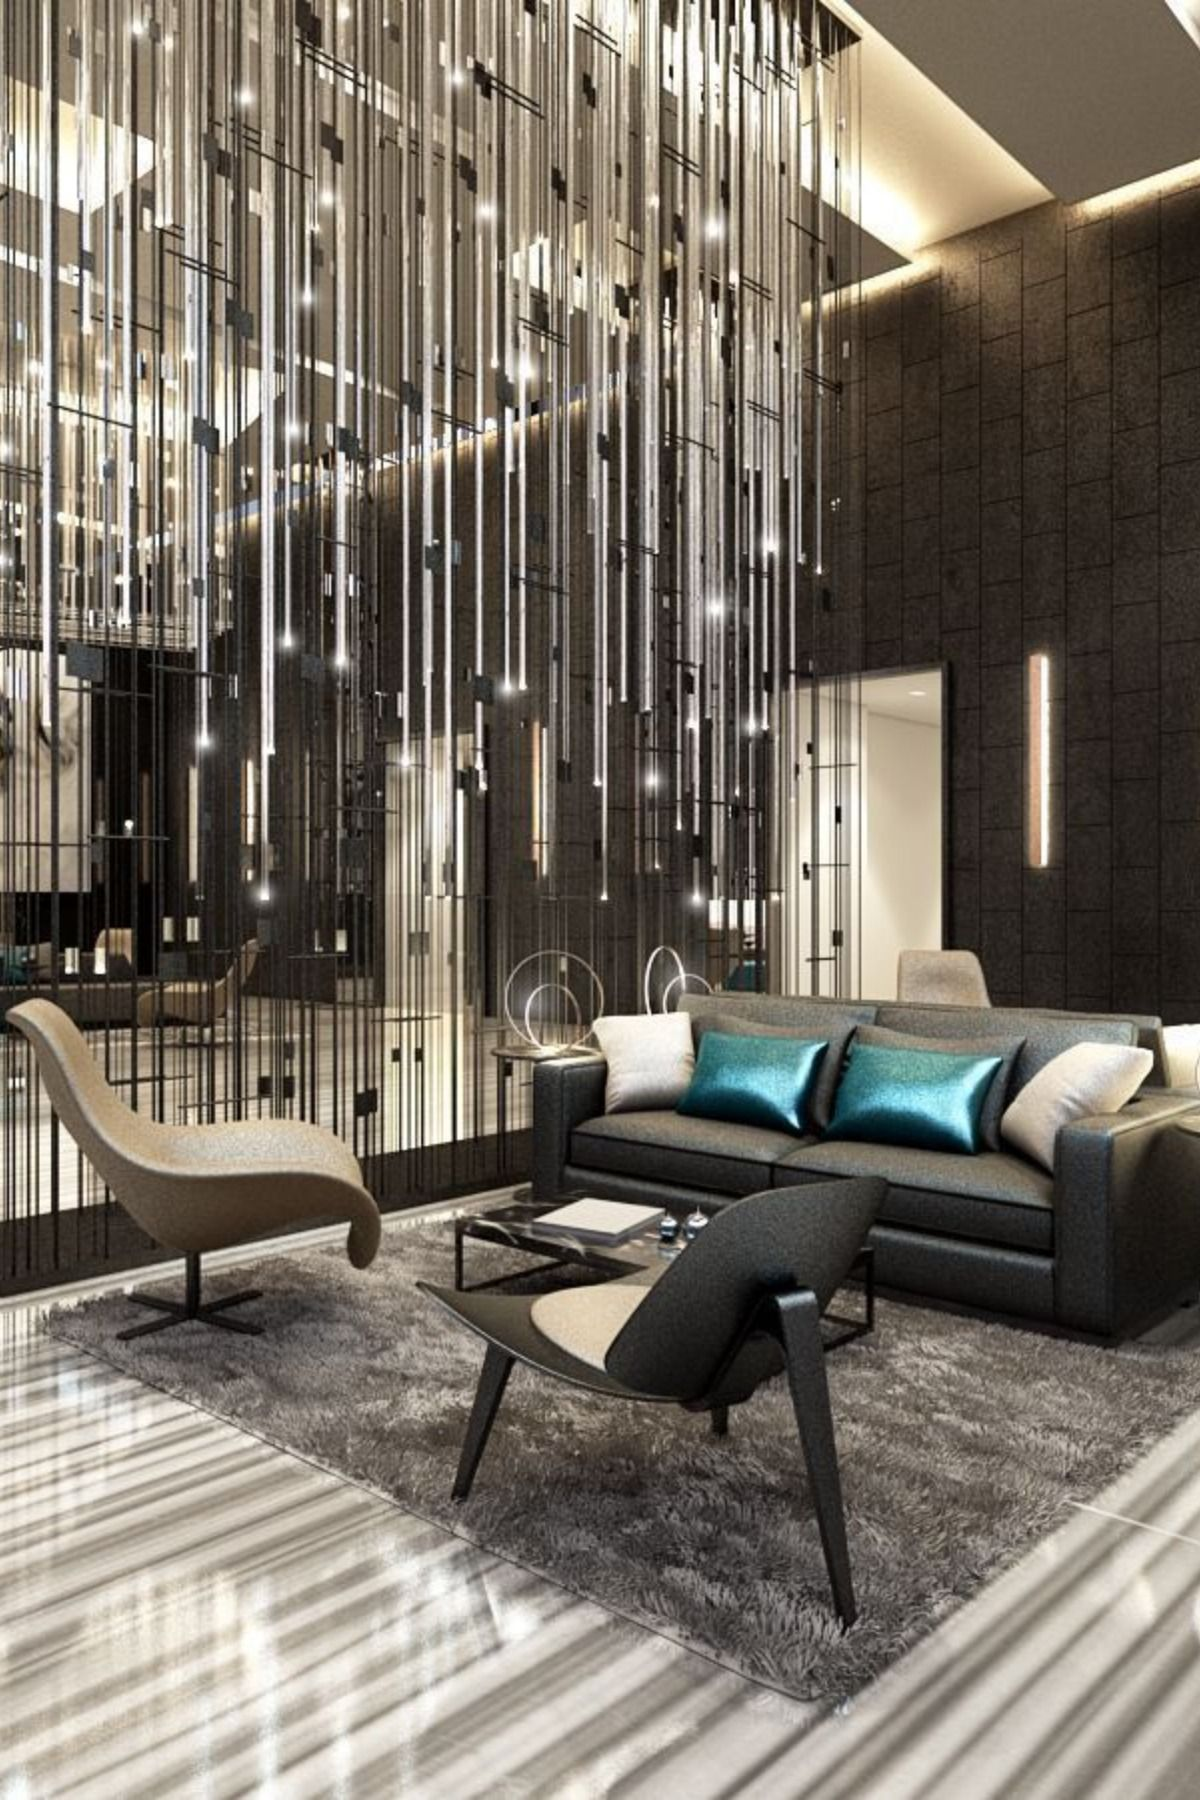 Hospitality Interior Design Trends Change Very Fast But There Are